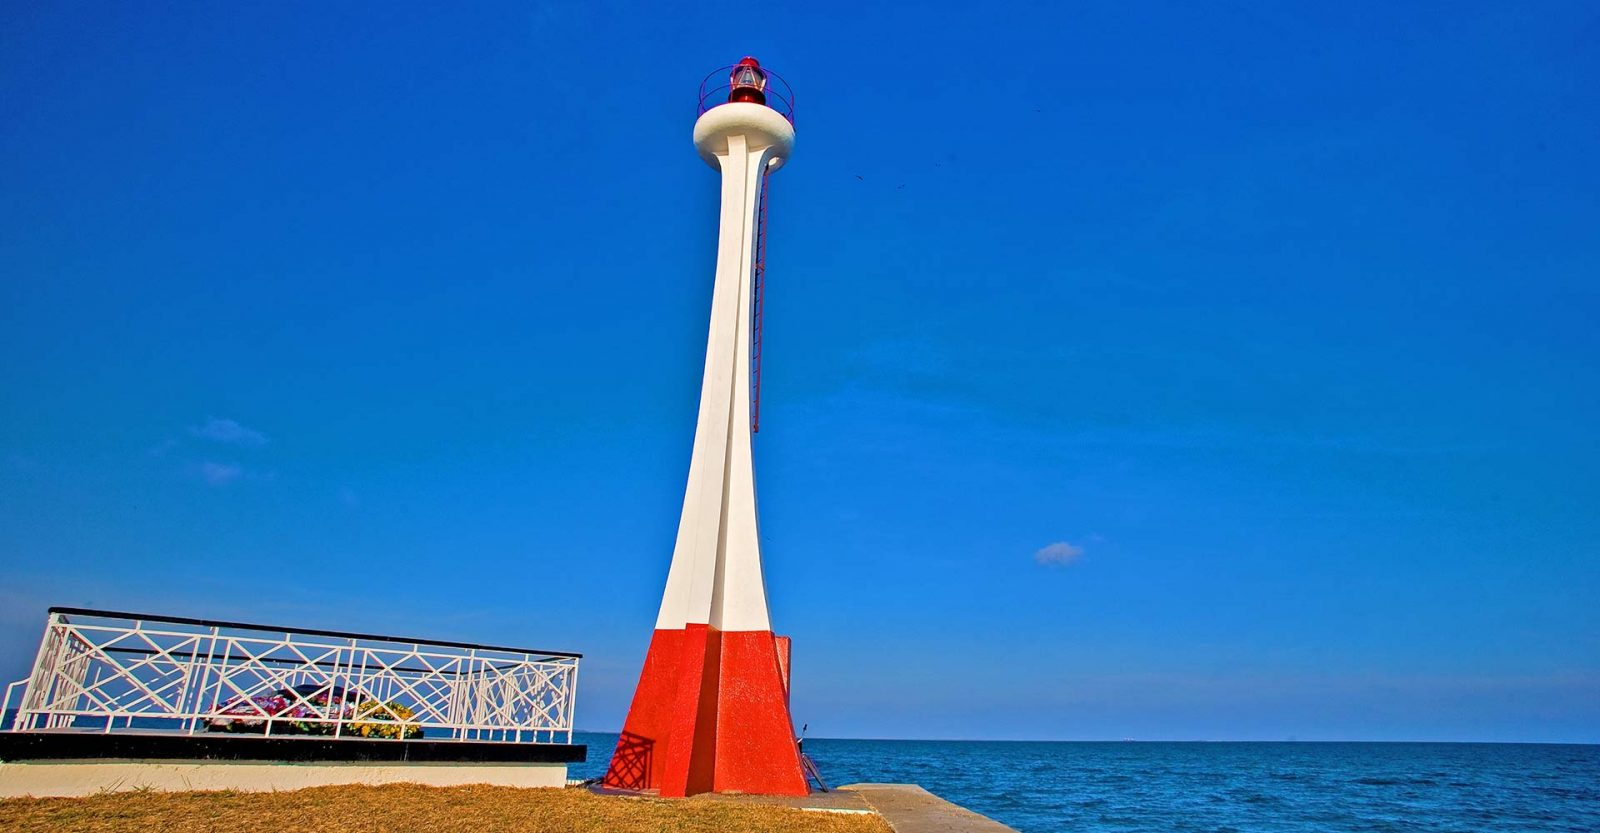 Baron Bliss LightHouse in Belize City